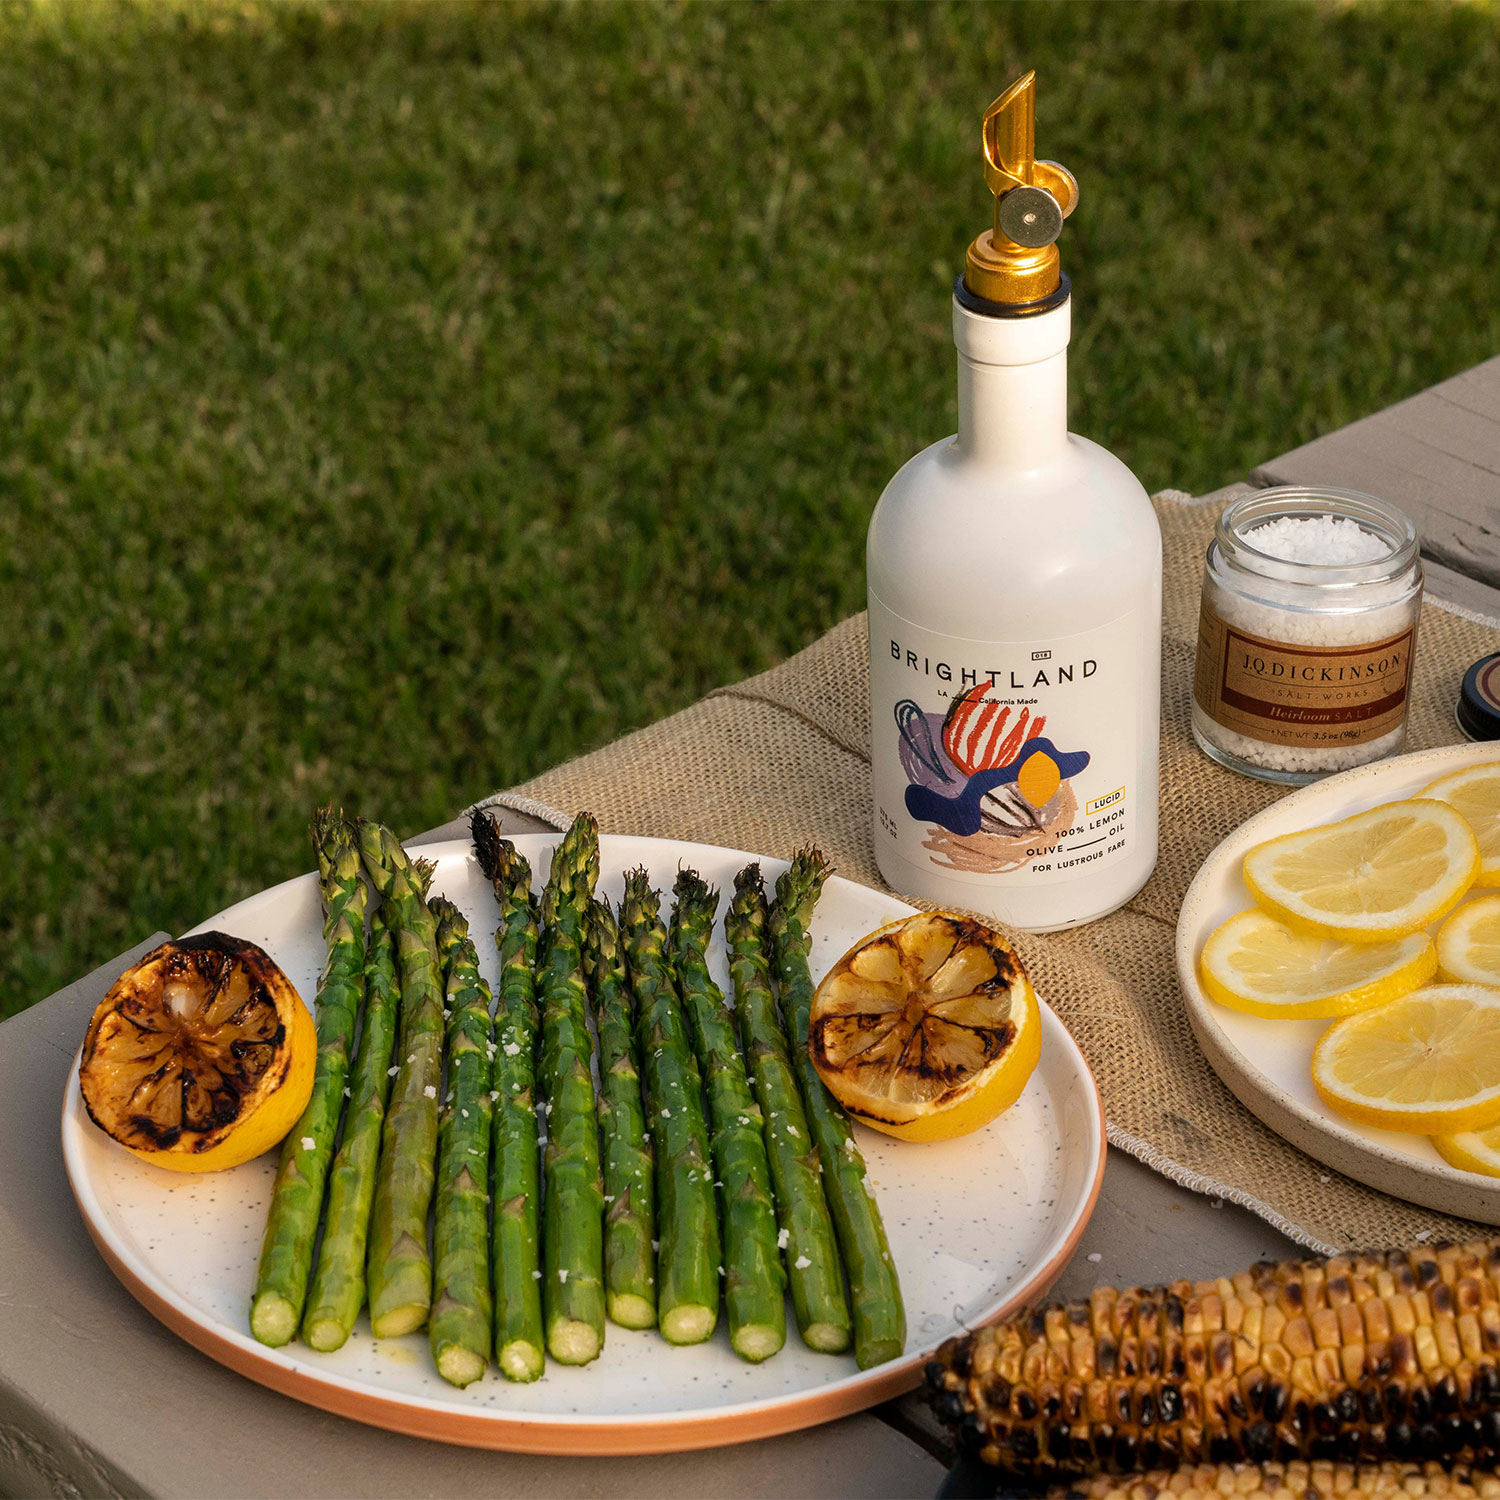 grilled vegetables with Brightland products